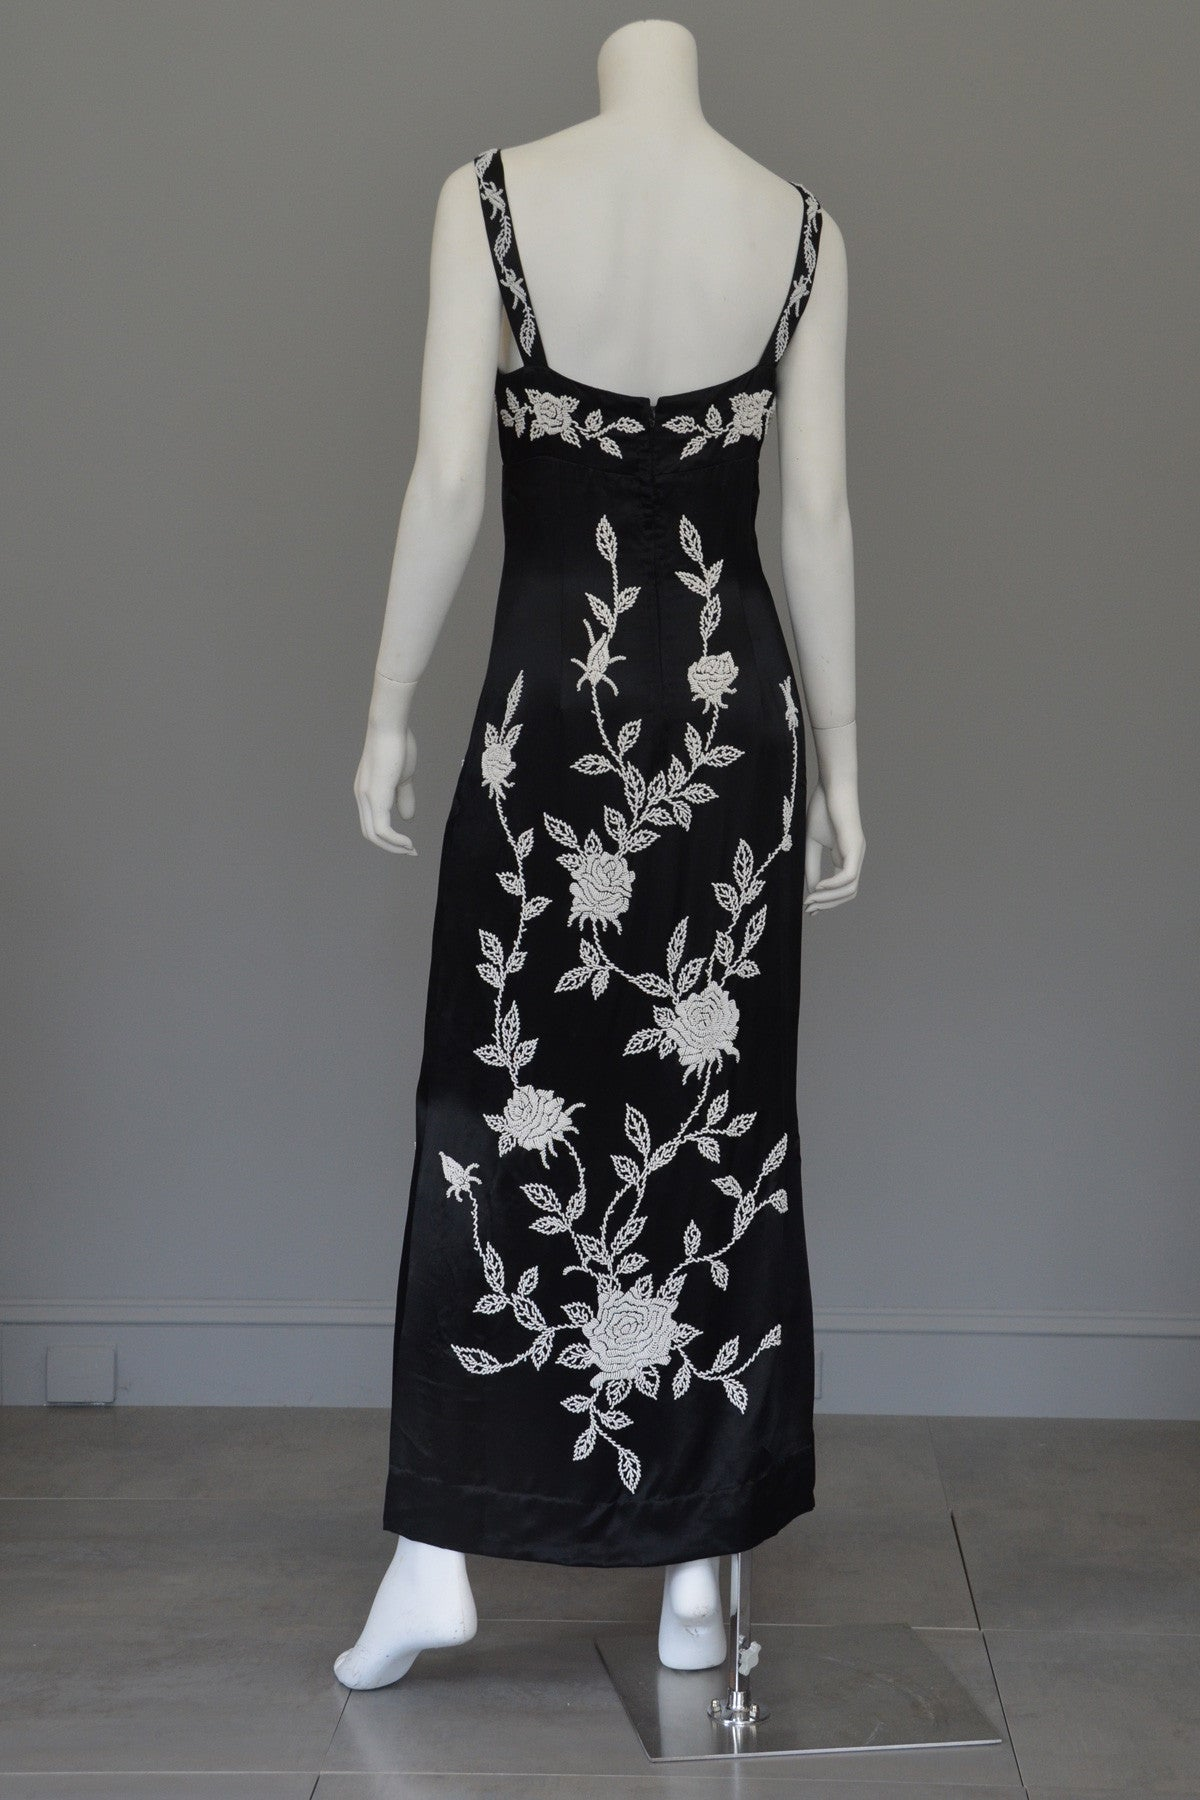 1960's 70's Silk Sheath Dress with Intricate Seed Bead Floral Design